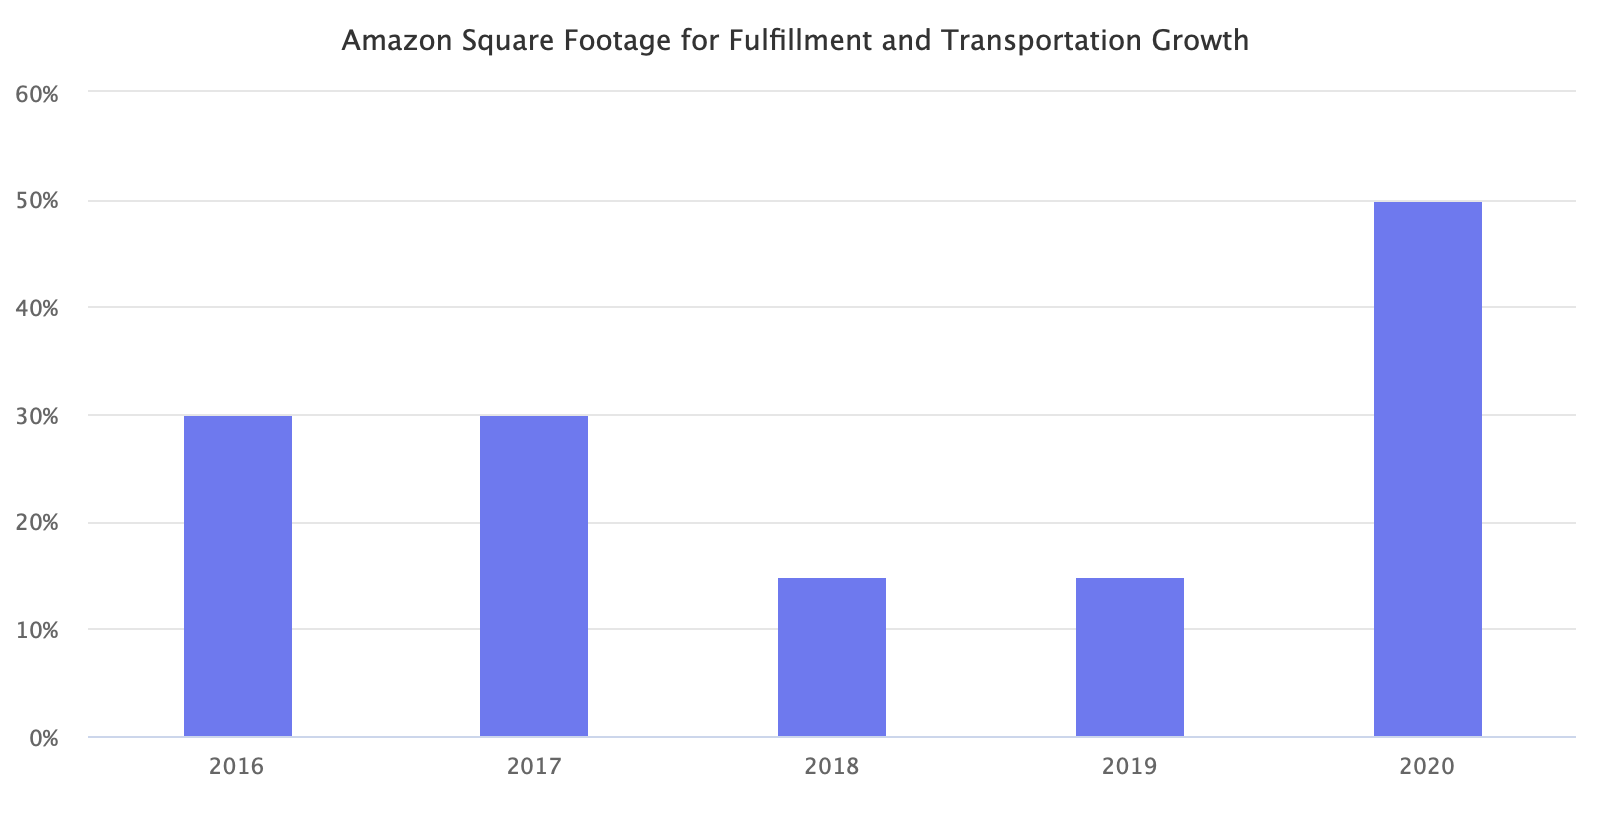 Amazon Square Footage for Fulfillment and Transportation Growth